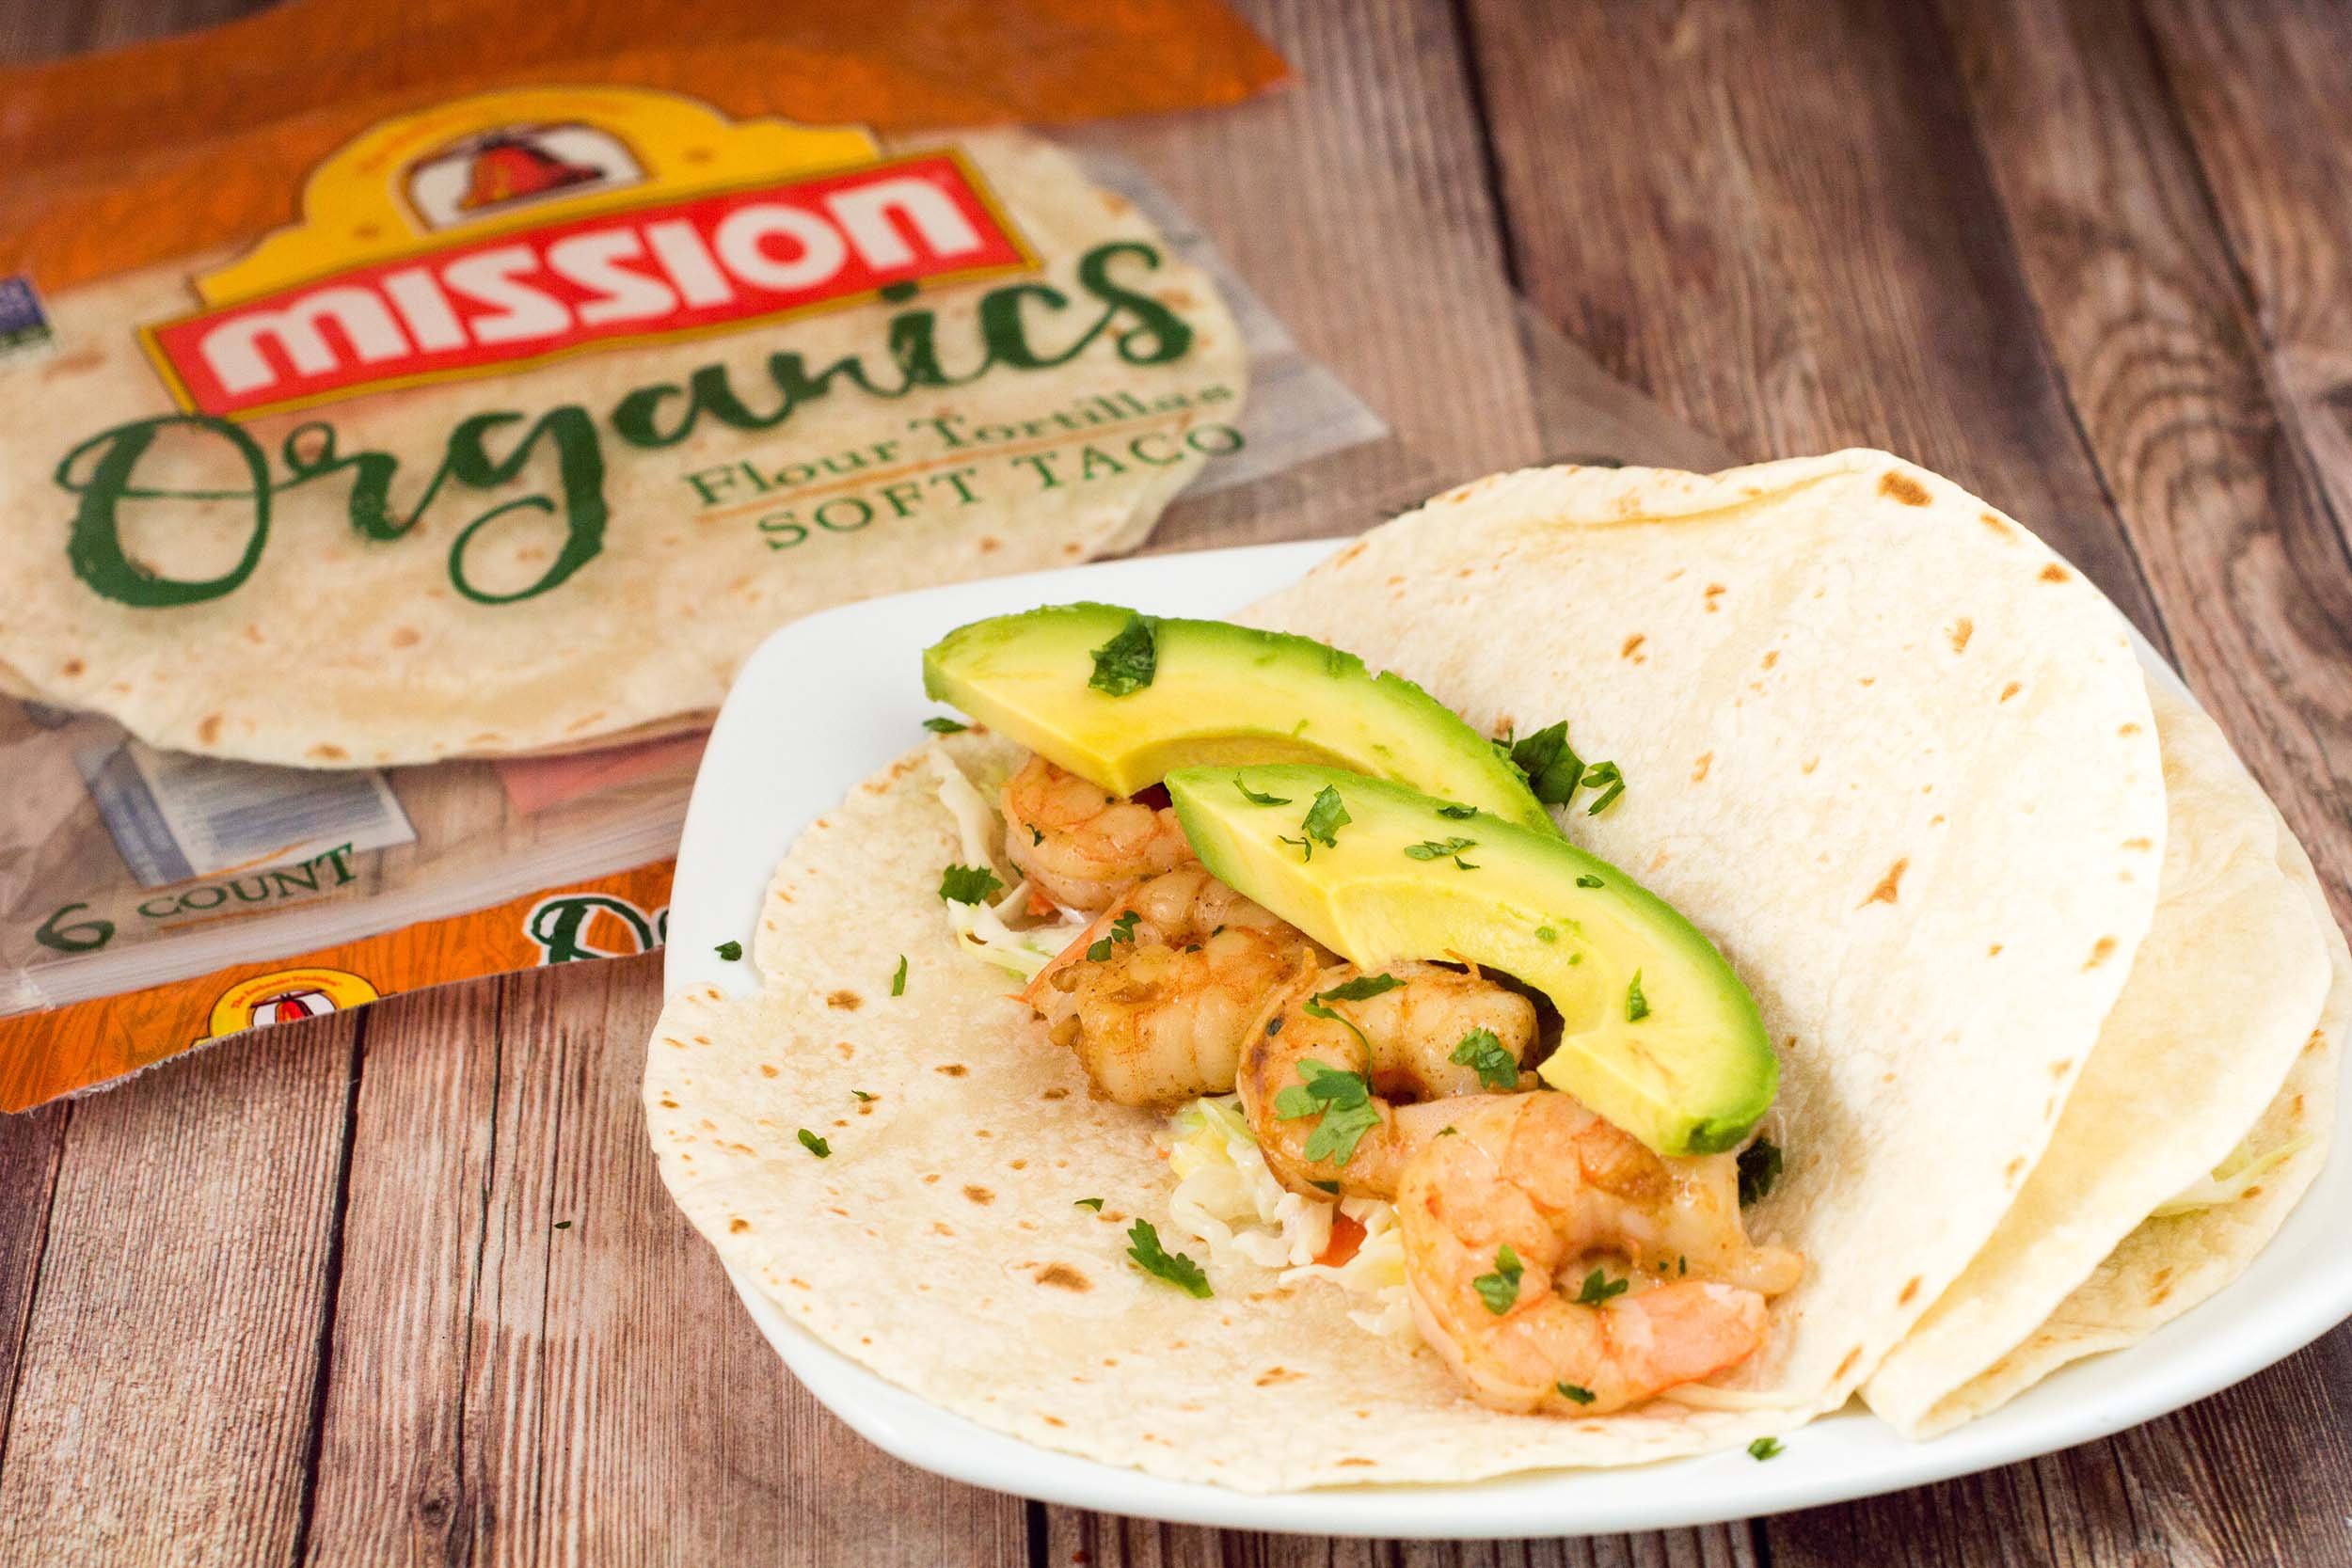 With a touch of avocado and pineapple slaw for some sweetness, these chipotle lime shrimp tacos are the perfect combination of spicy and fruity!